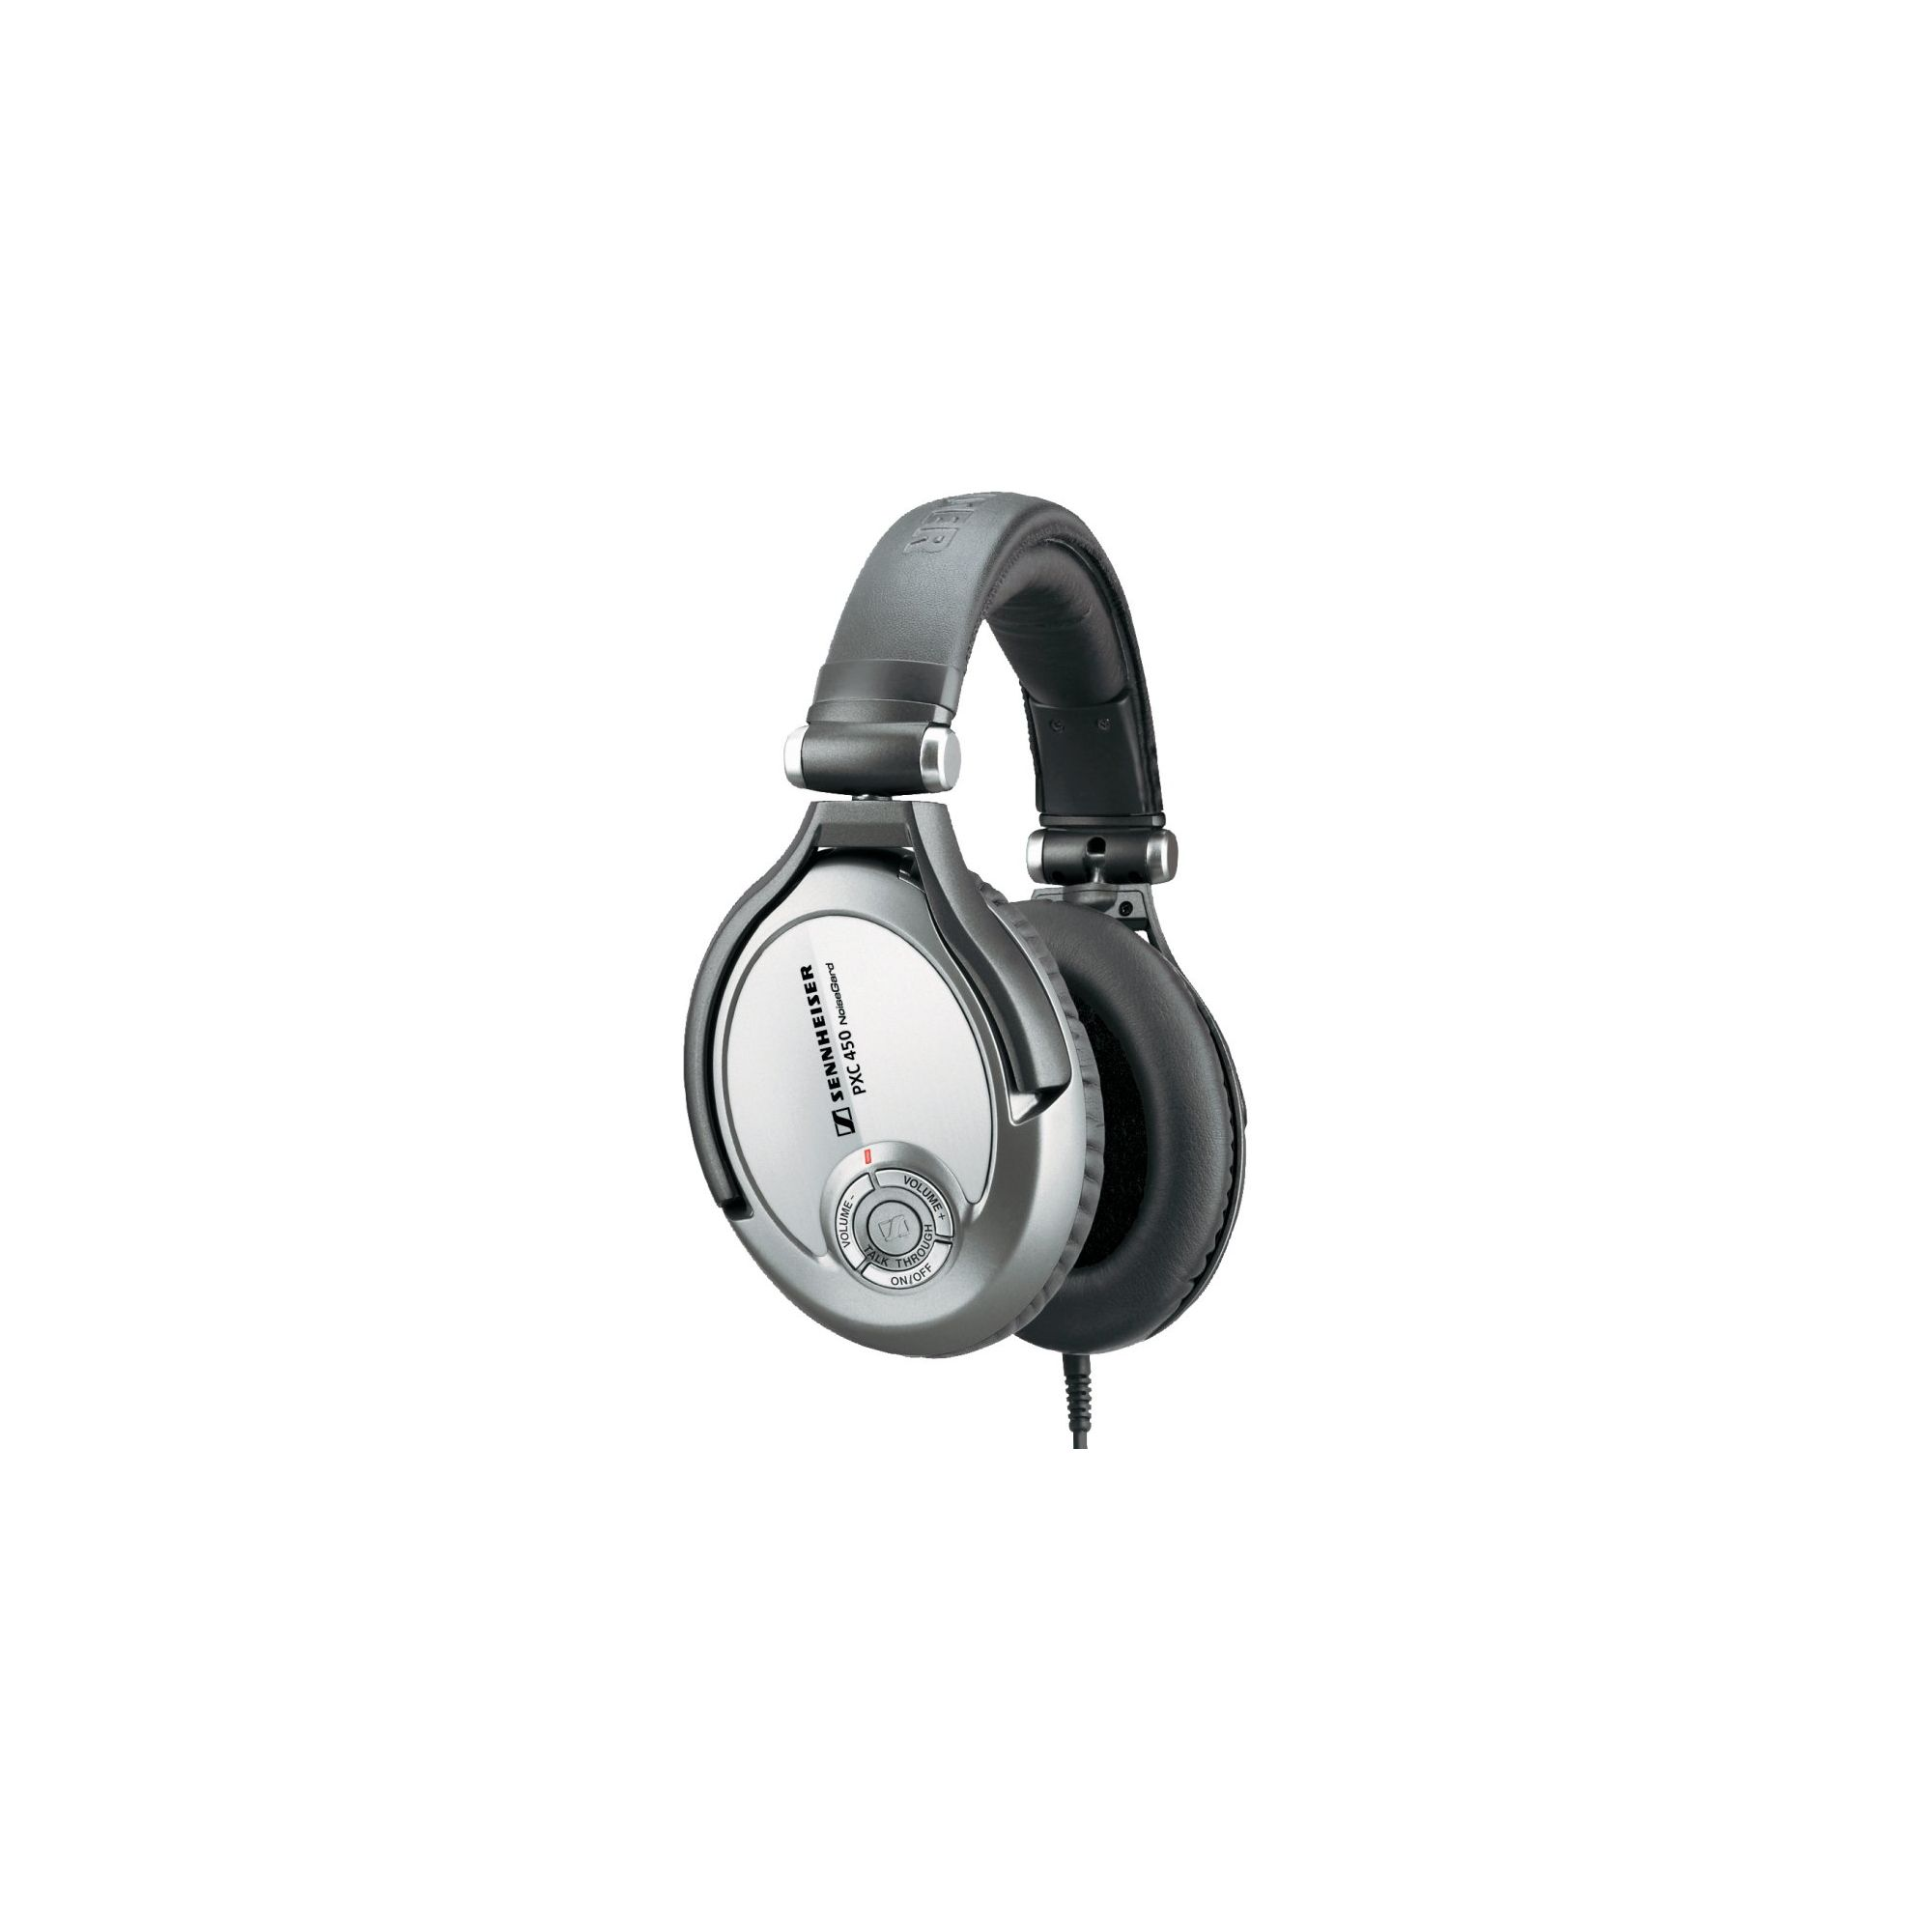 SENNHEISER PXC450 NOISE CANCELLING PORTABLE HEADPHONES at Tesco Direct